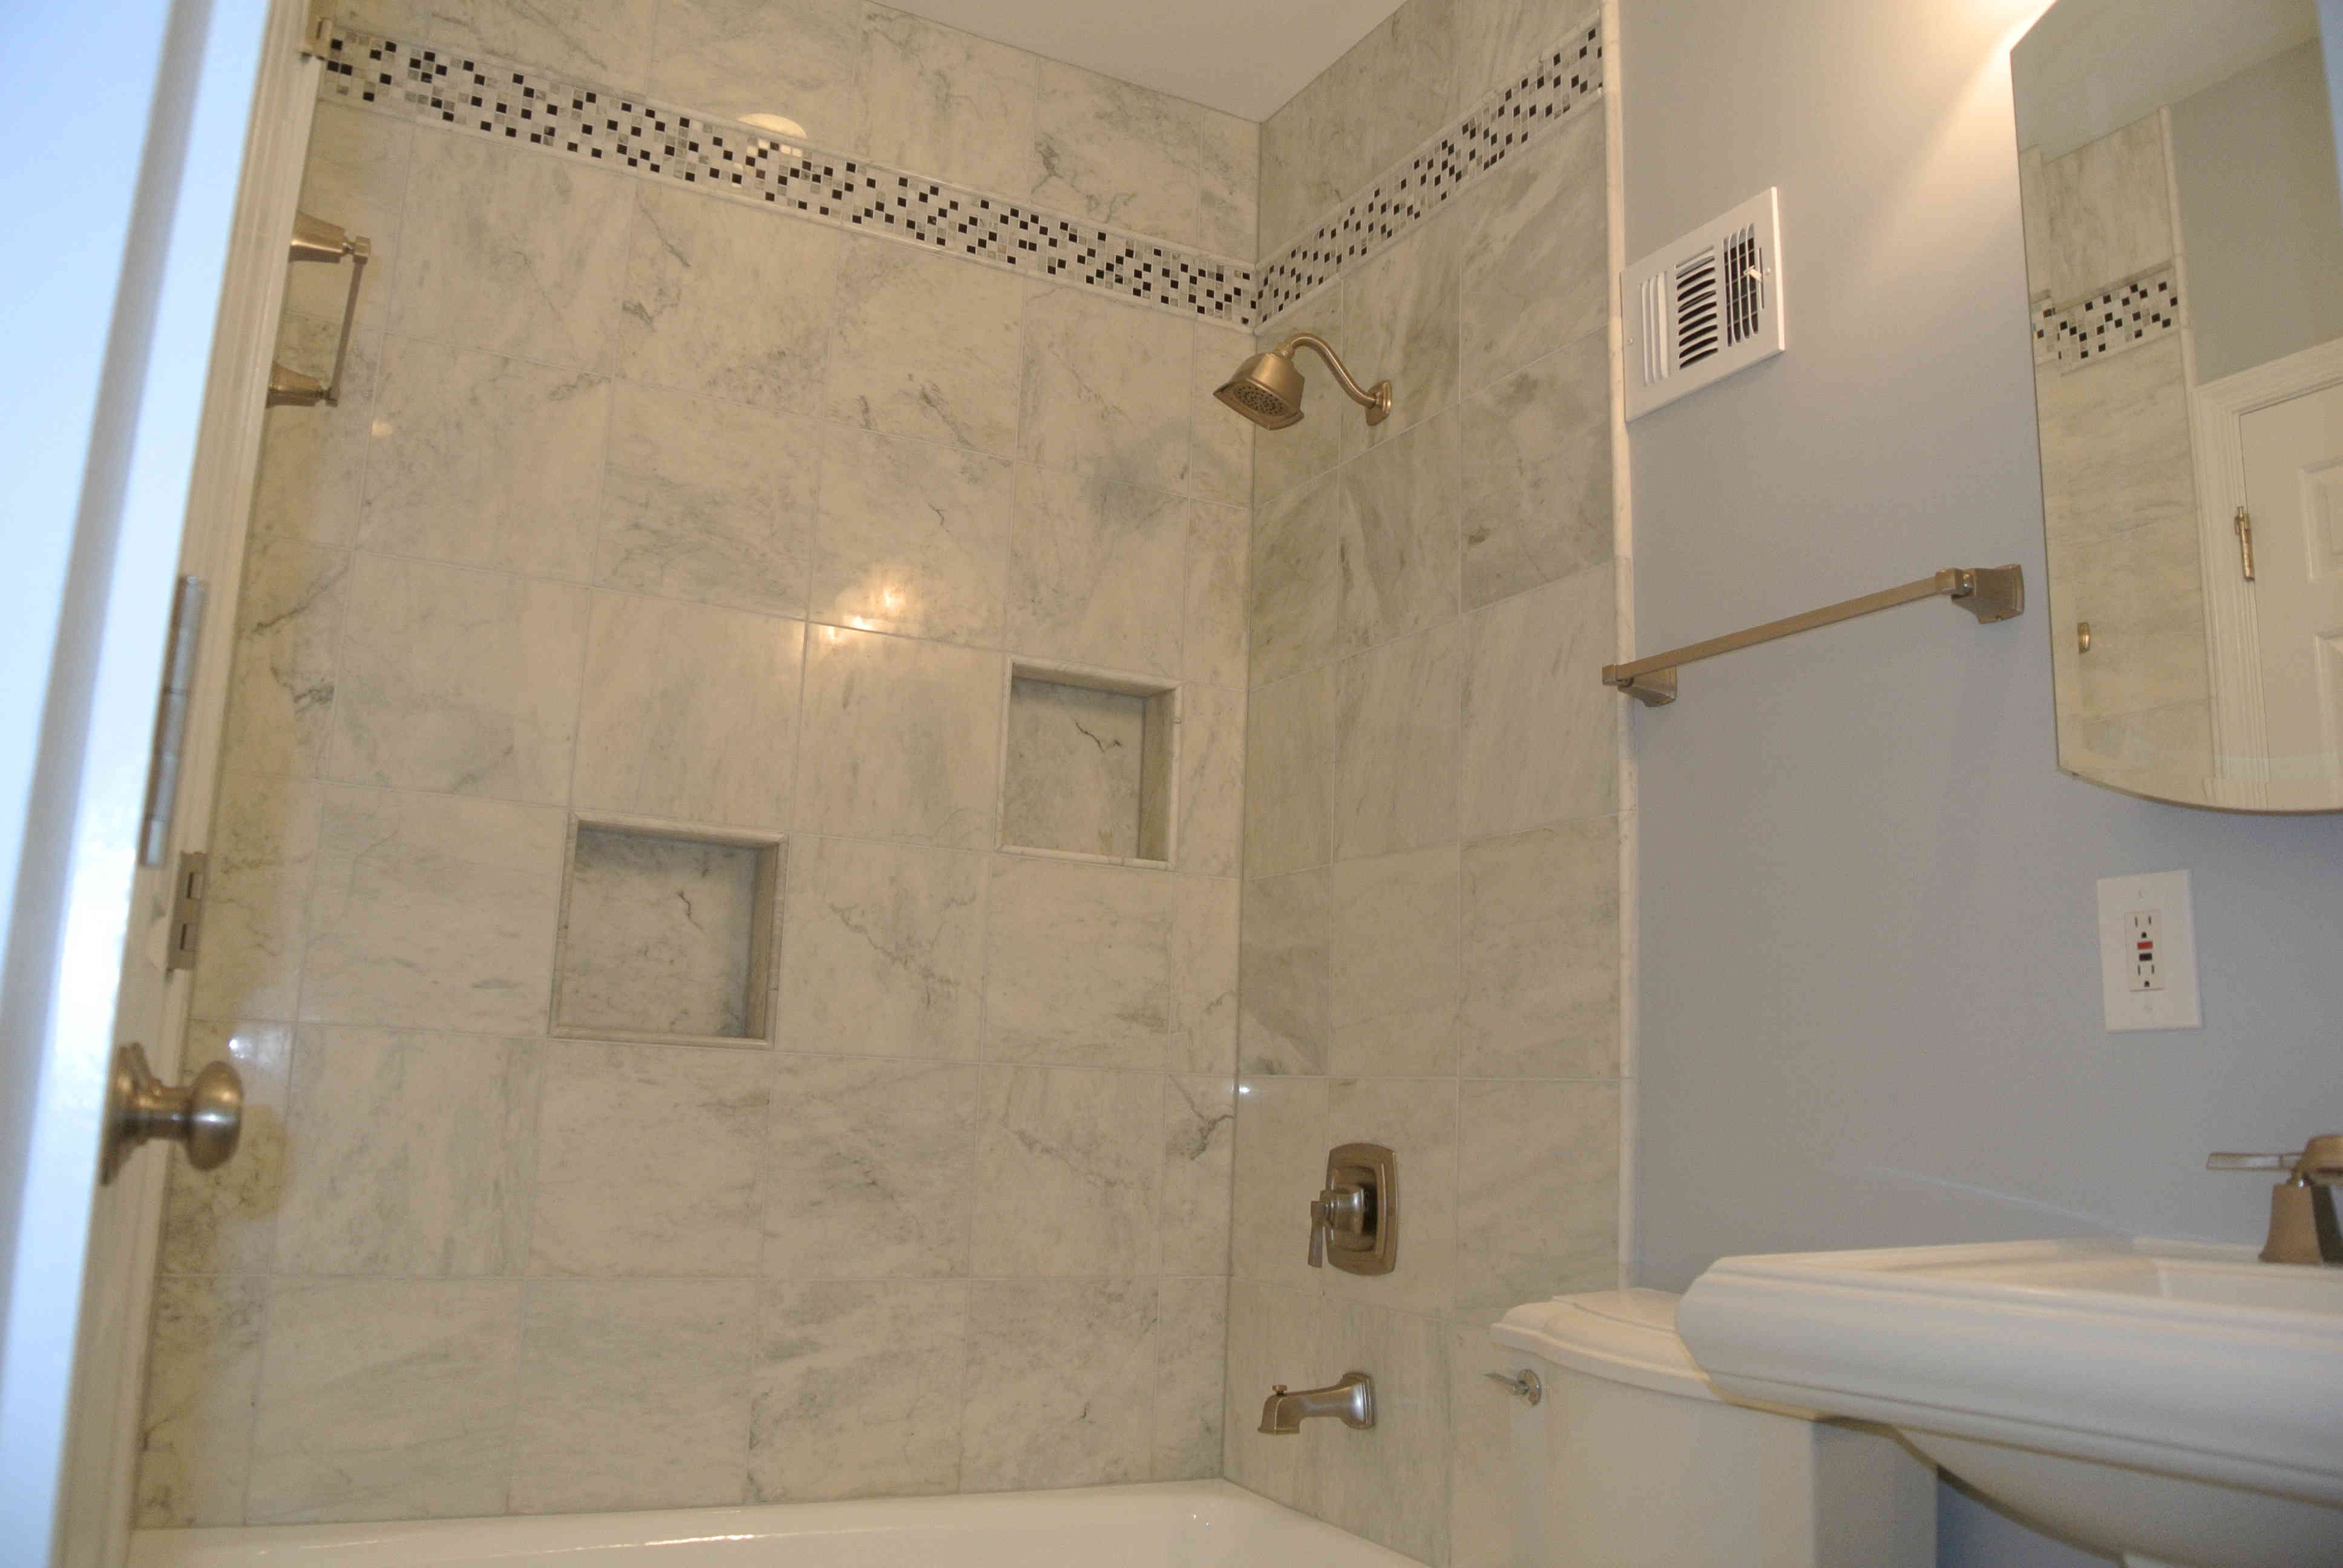 Dc Bathroom Remodel Stunning Bathroom Remodeling In Chevy Chase Md & Washington Dc  Melness . Review